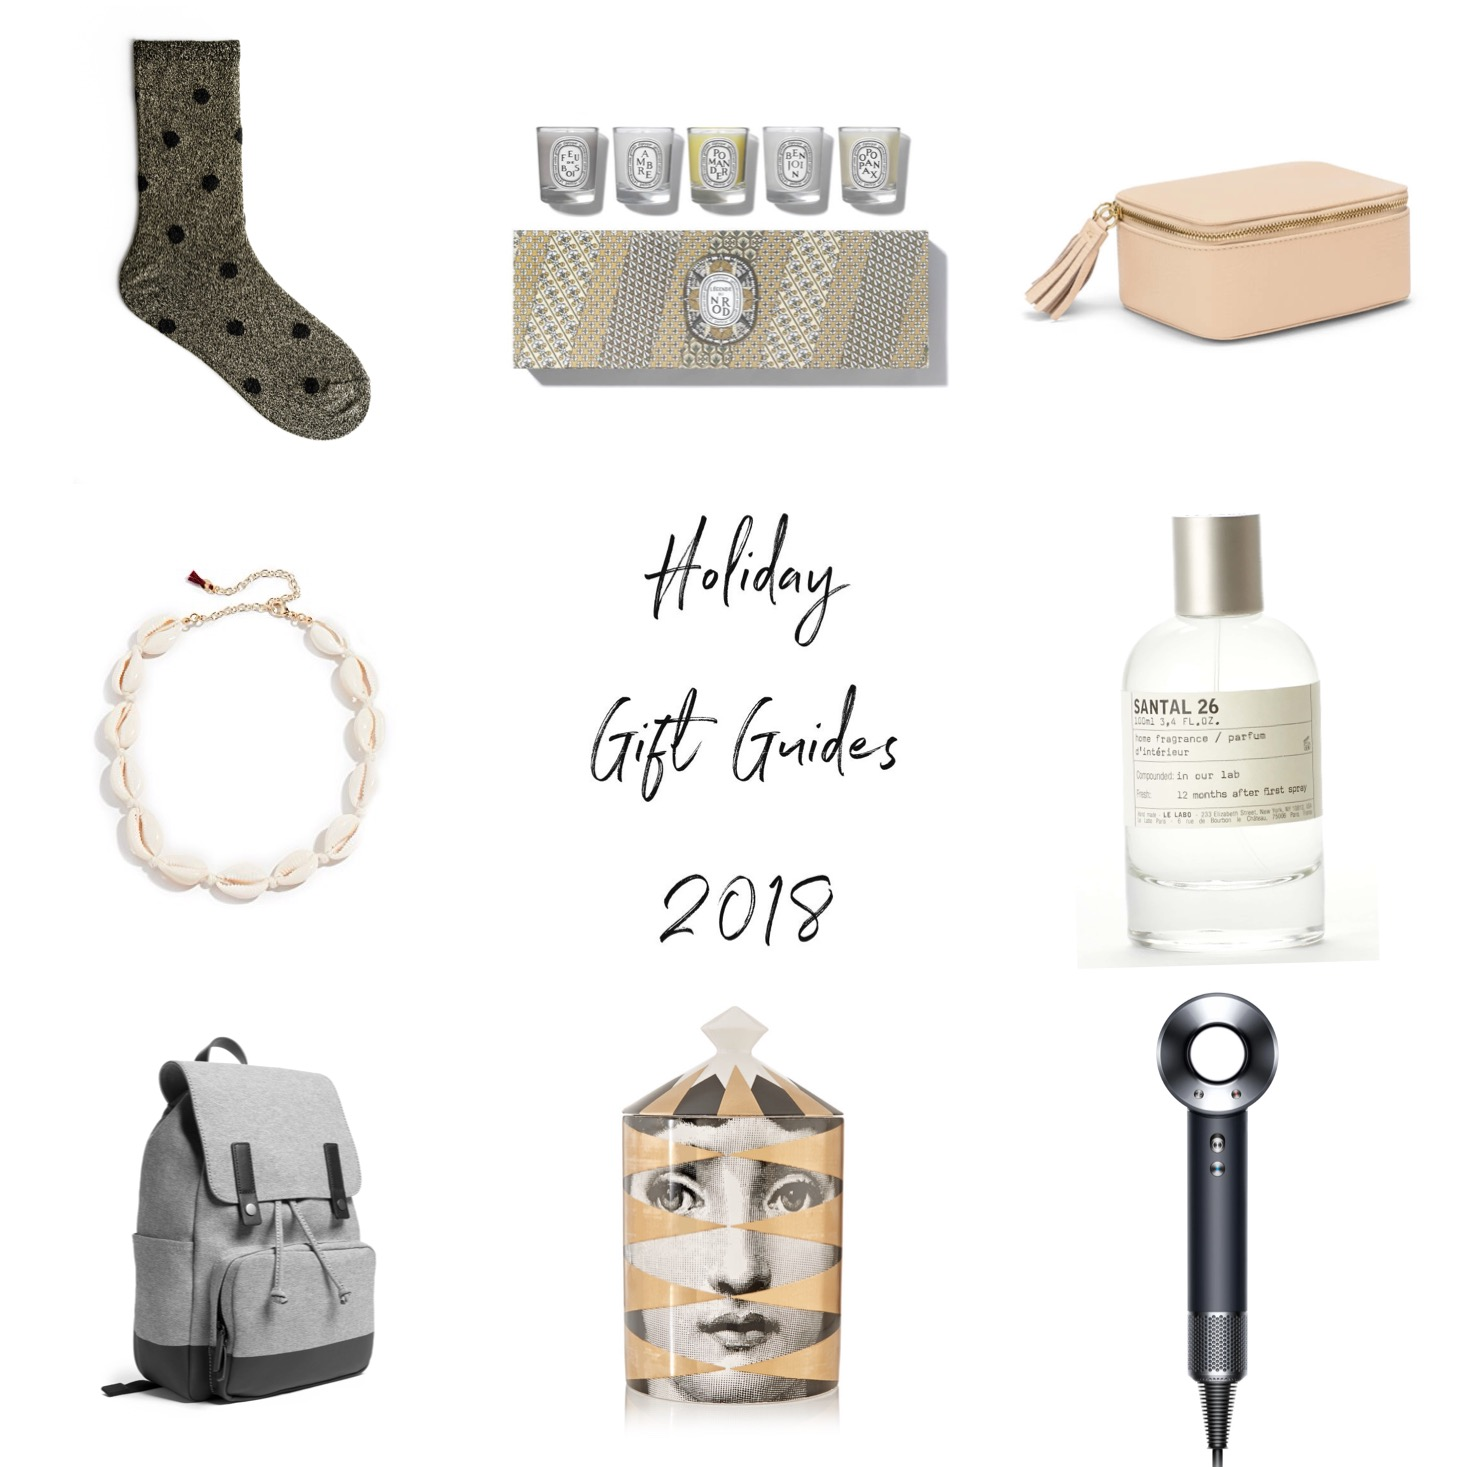 Holiday gift guides for women 2018, for men, beauty gift guide, jewelry gift guide under $80